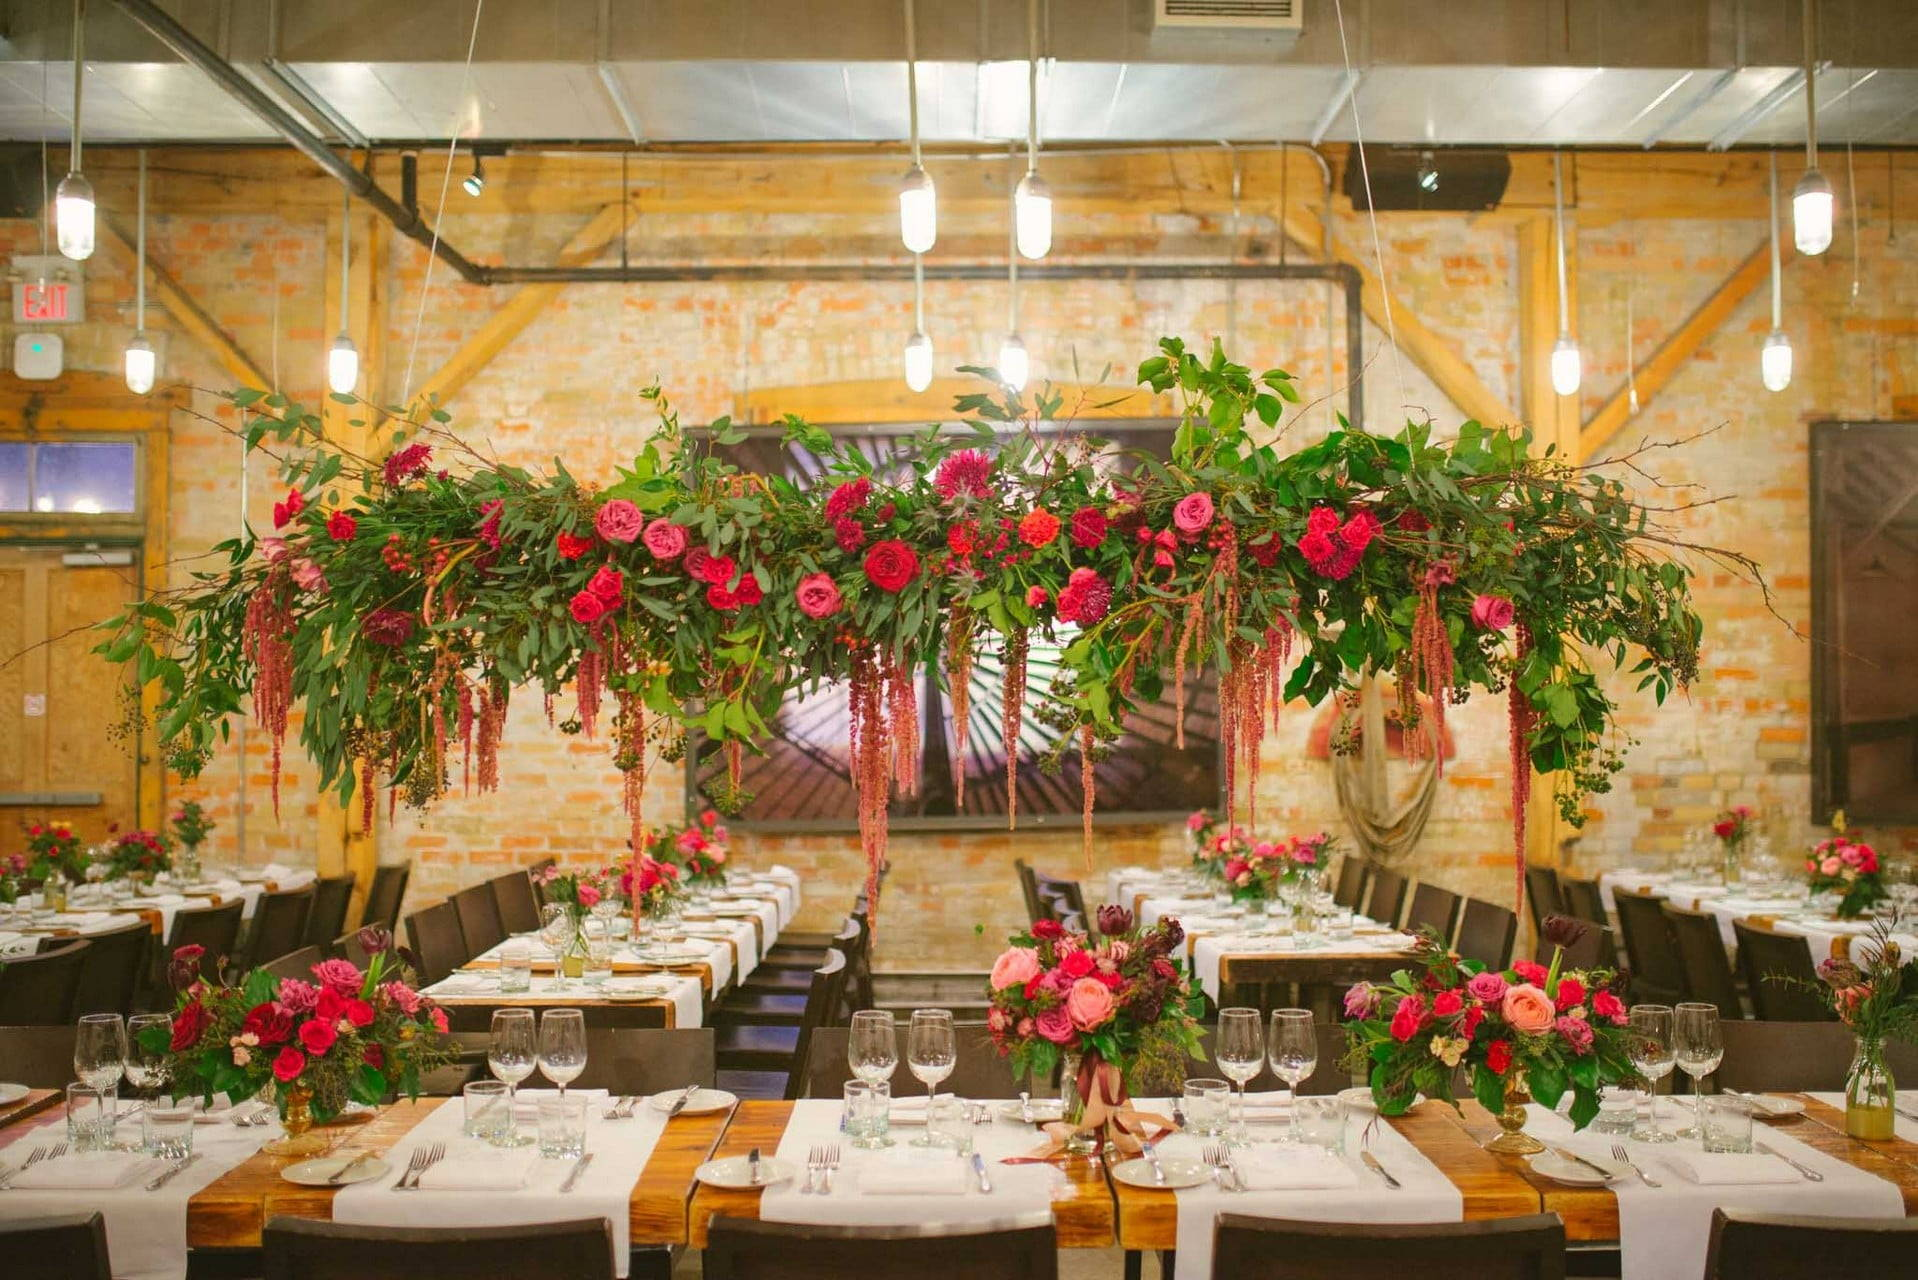 Real Weddings Archeo: Niveen And Rob's Winter Garden Wedding At Archeo